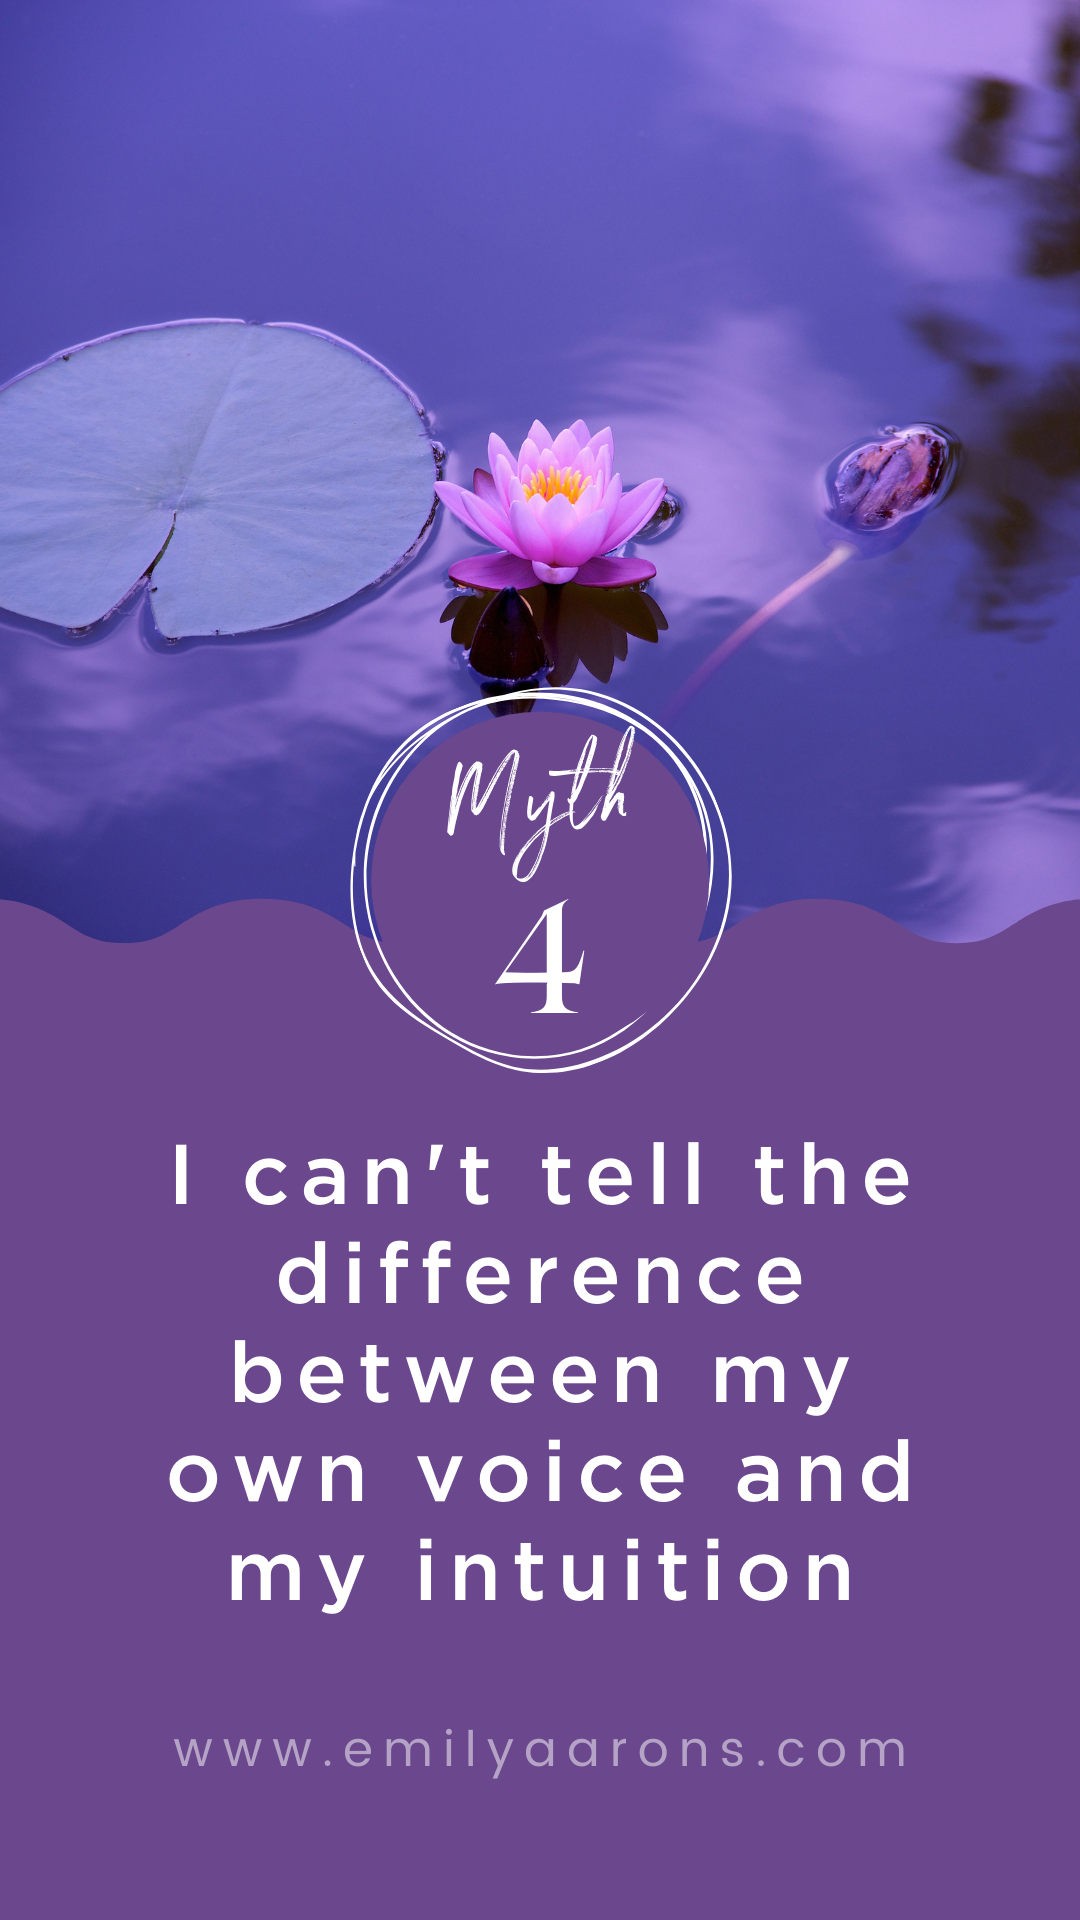 7 Myths About Intuition (That Just Aren't True)